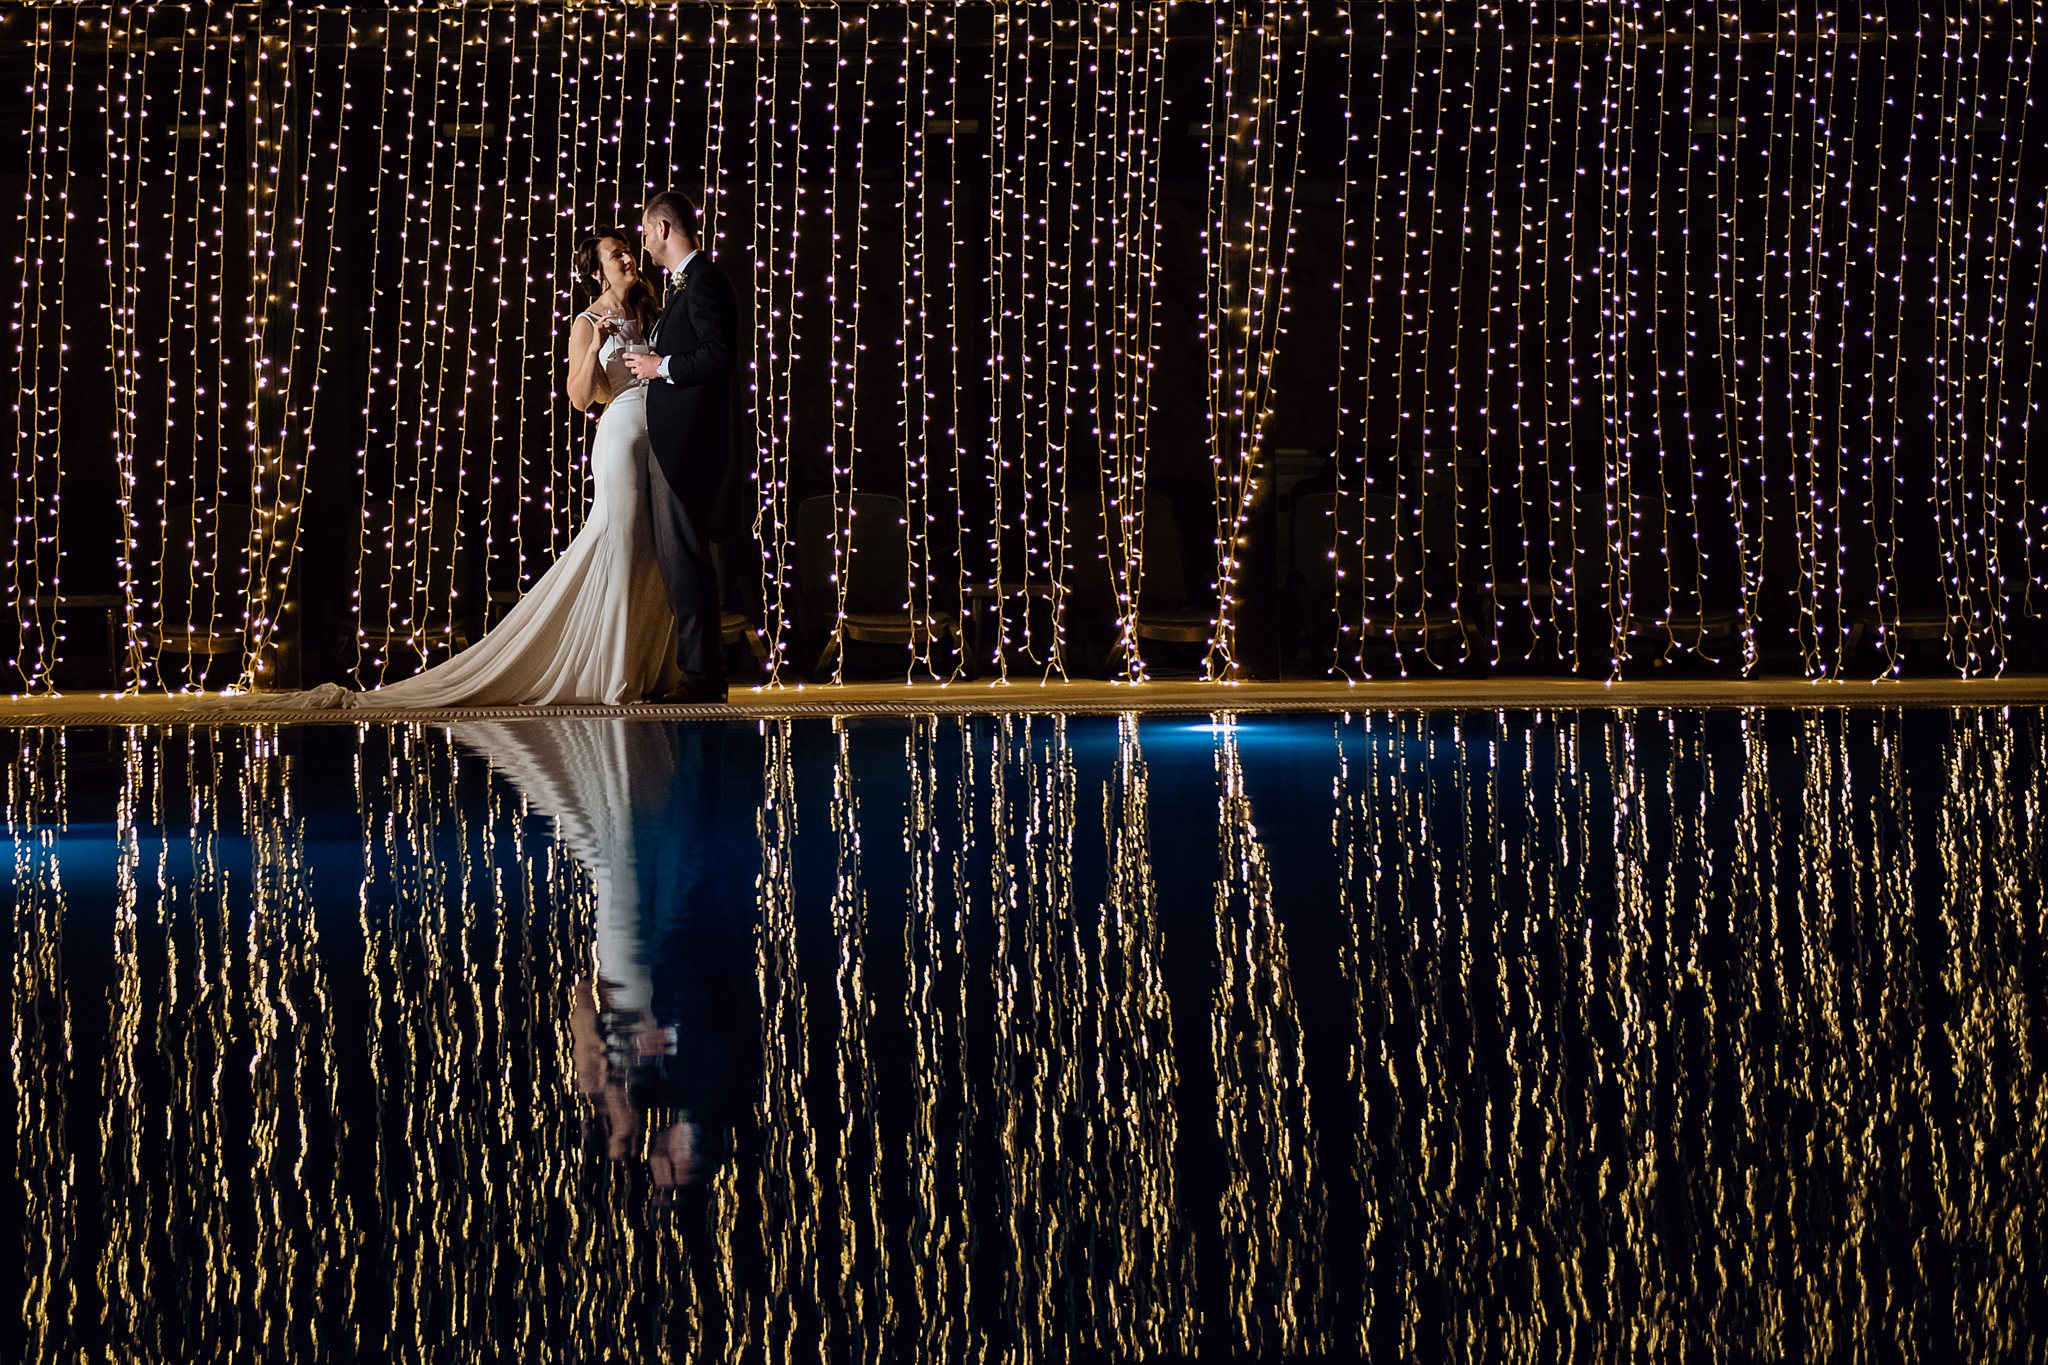 bride and groom reflection portrait- photo by Shane P Watts Photography